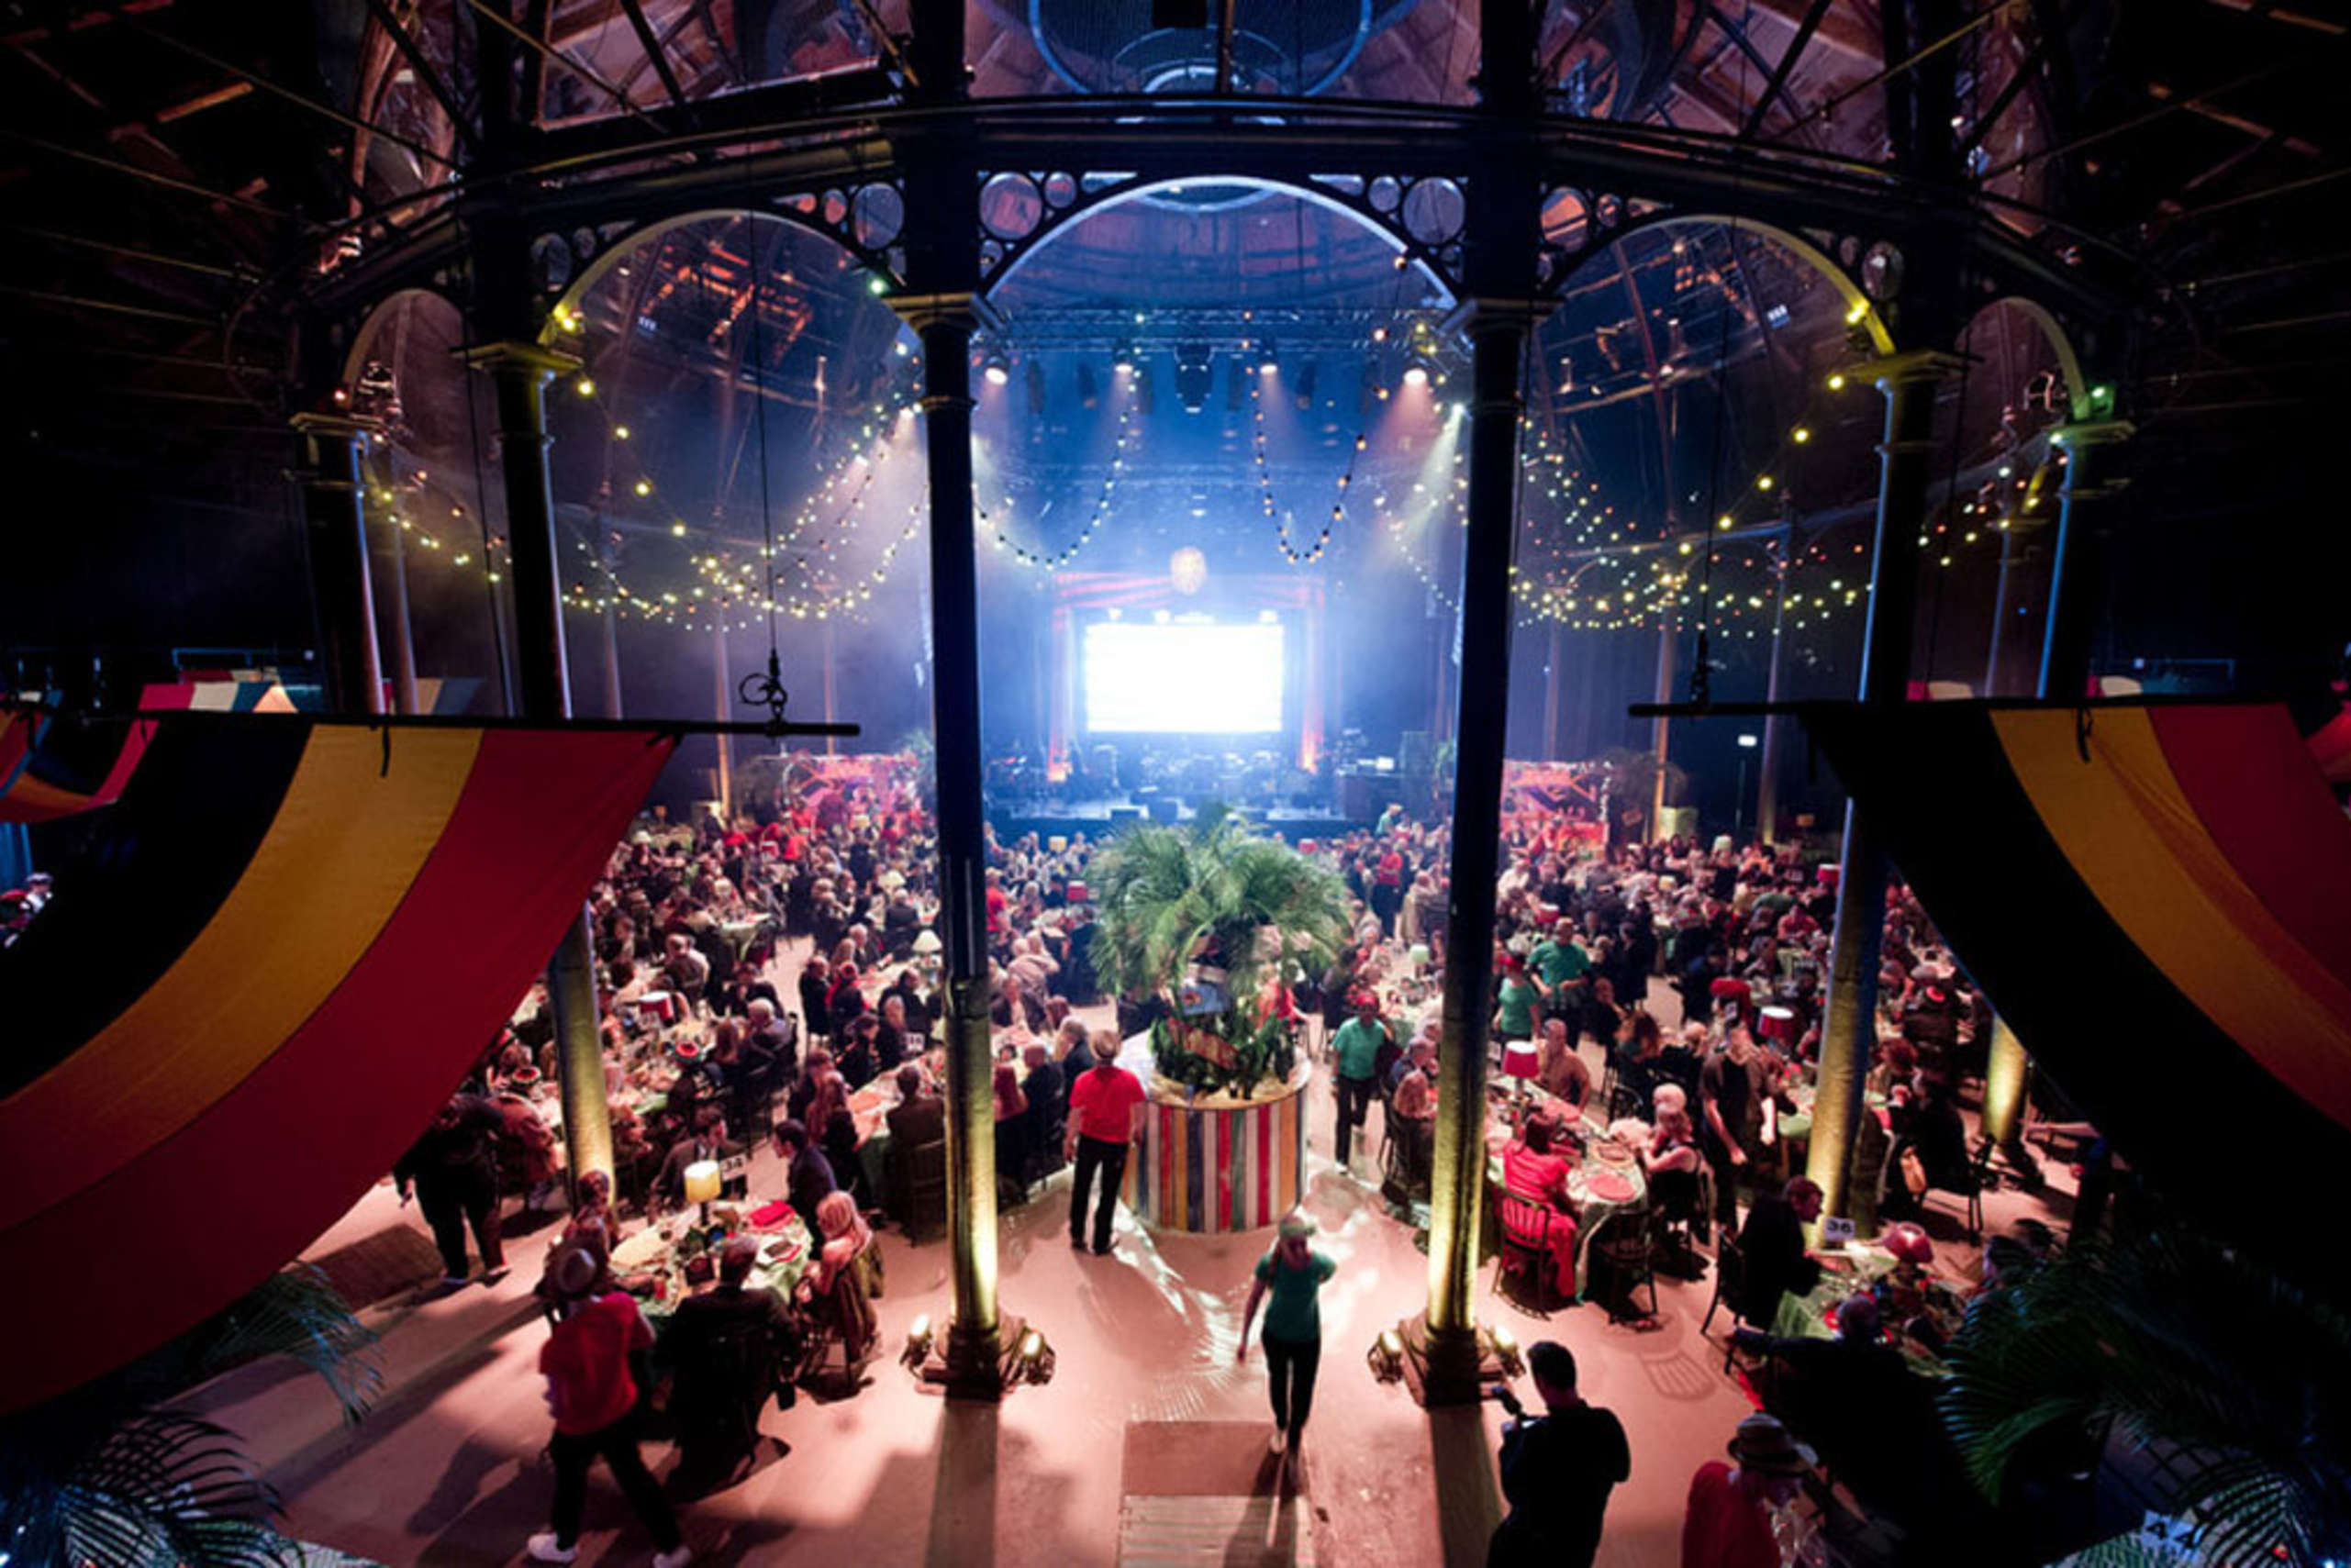 """A Night of Reggae"" for Save the Children UK, held at the Roundhouse in Camden, north London."